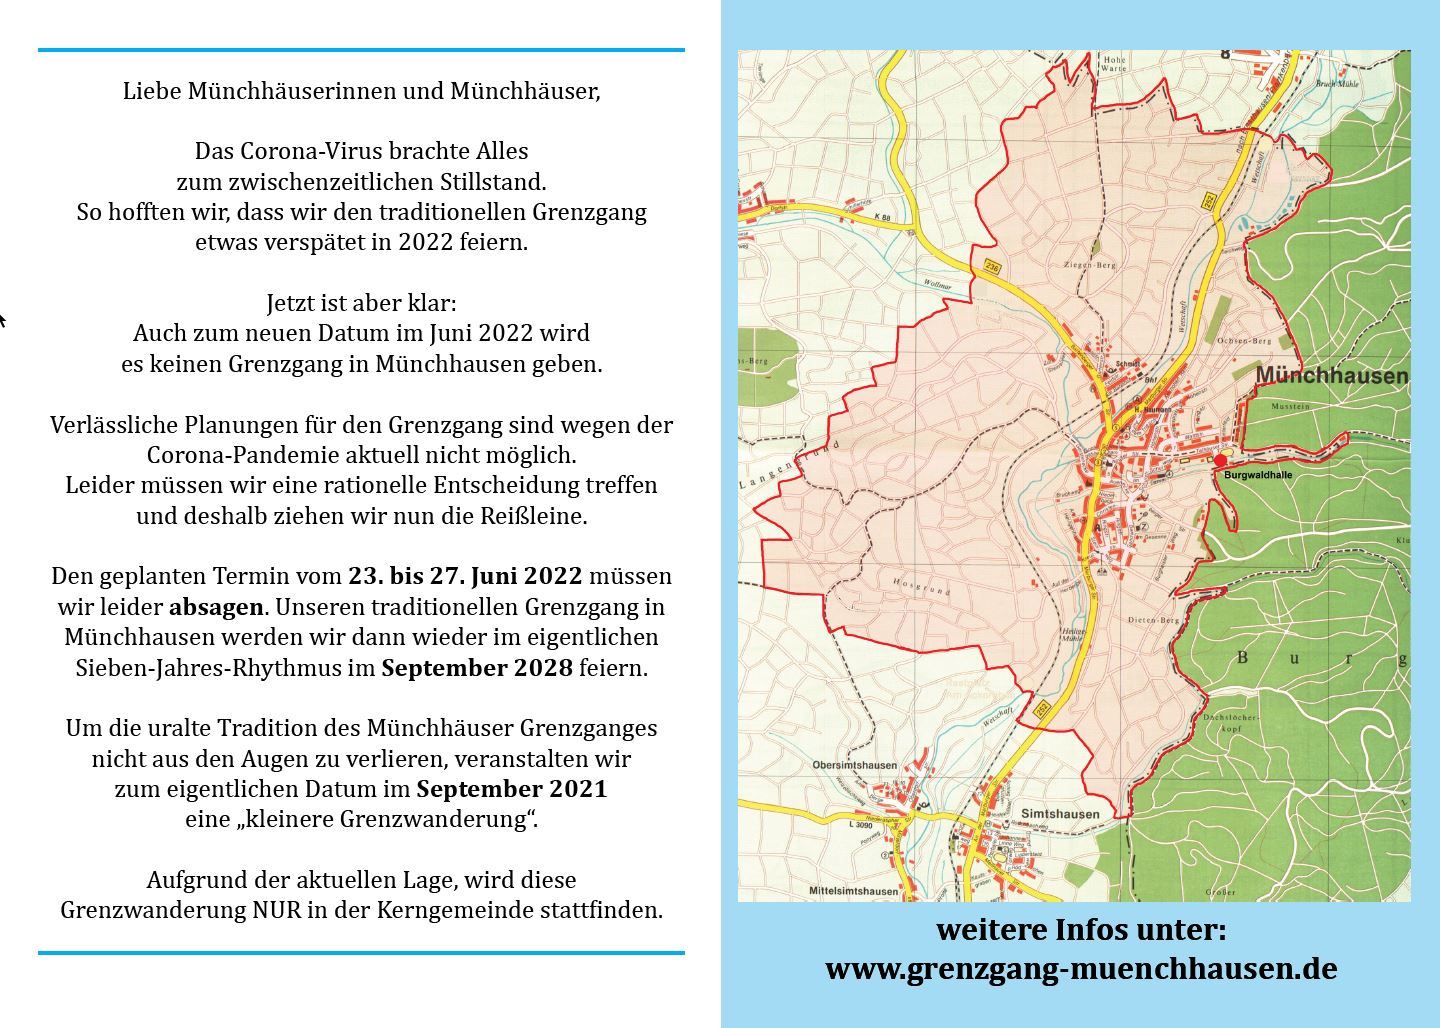 Flyer2.jpg (294 K<img style='width:20px;height:20px;' src='https://www.grenzgang-muenchhausen.de/images/smiley/cool.svg' alt='Cool' style='vertical-align:middle;' />